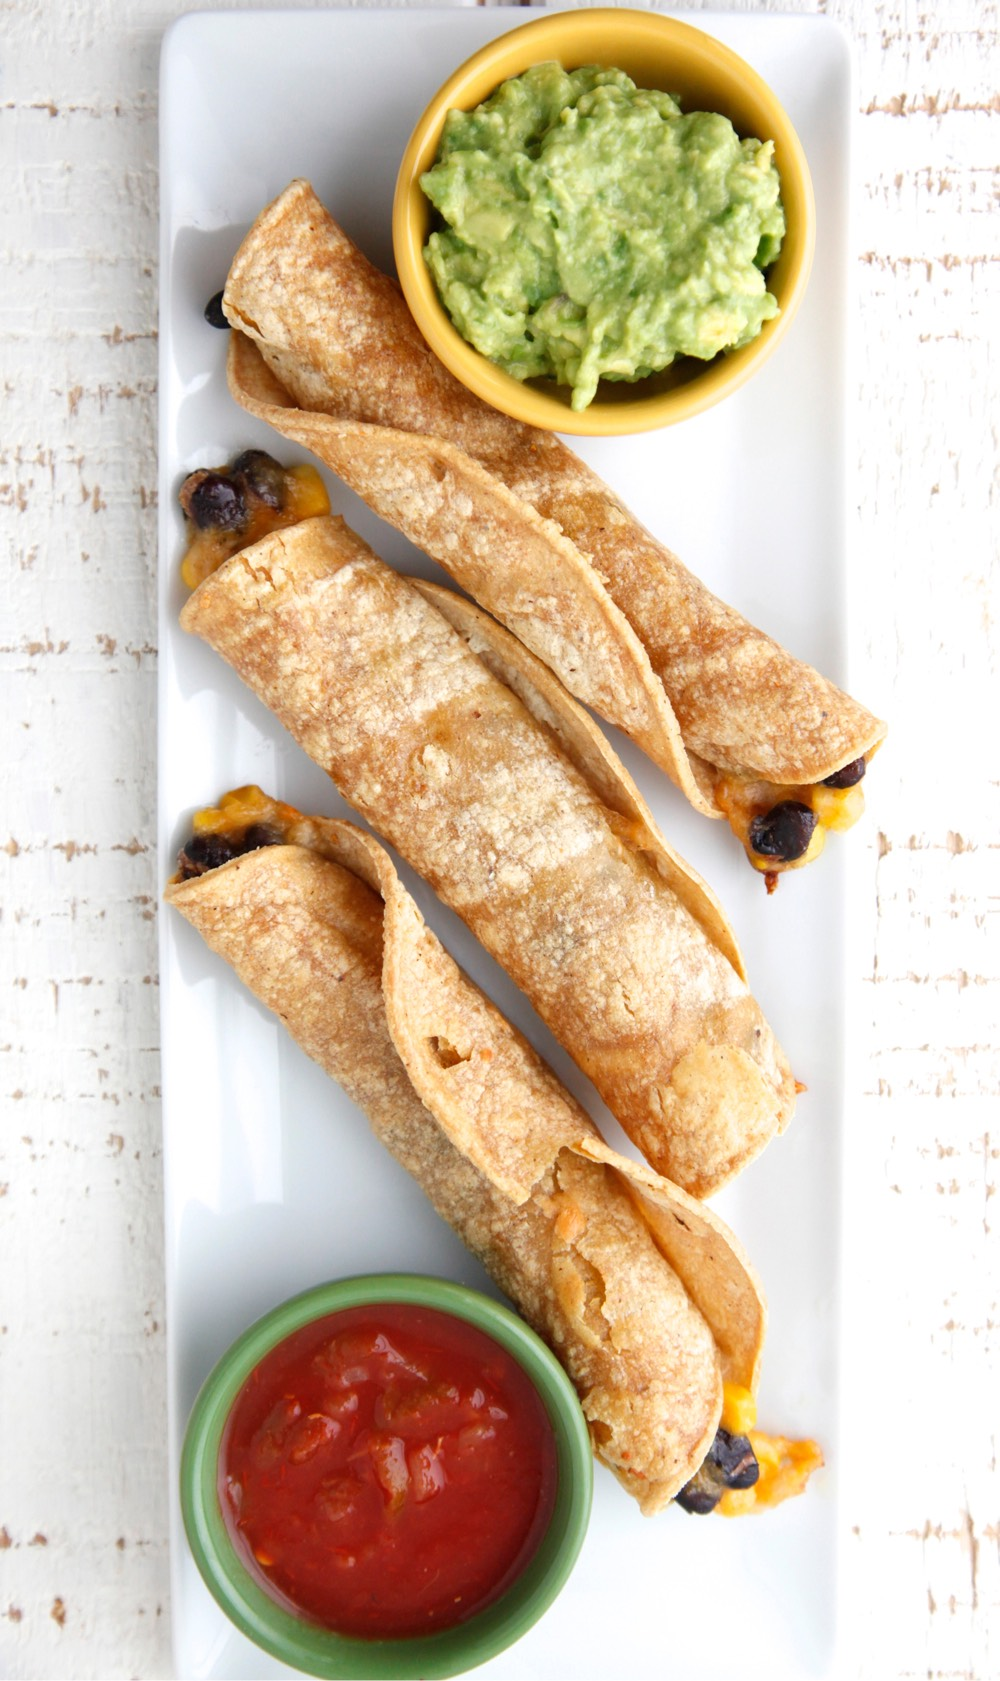 Vegetarian Baked Taquitos video from weelicious.com